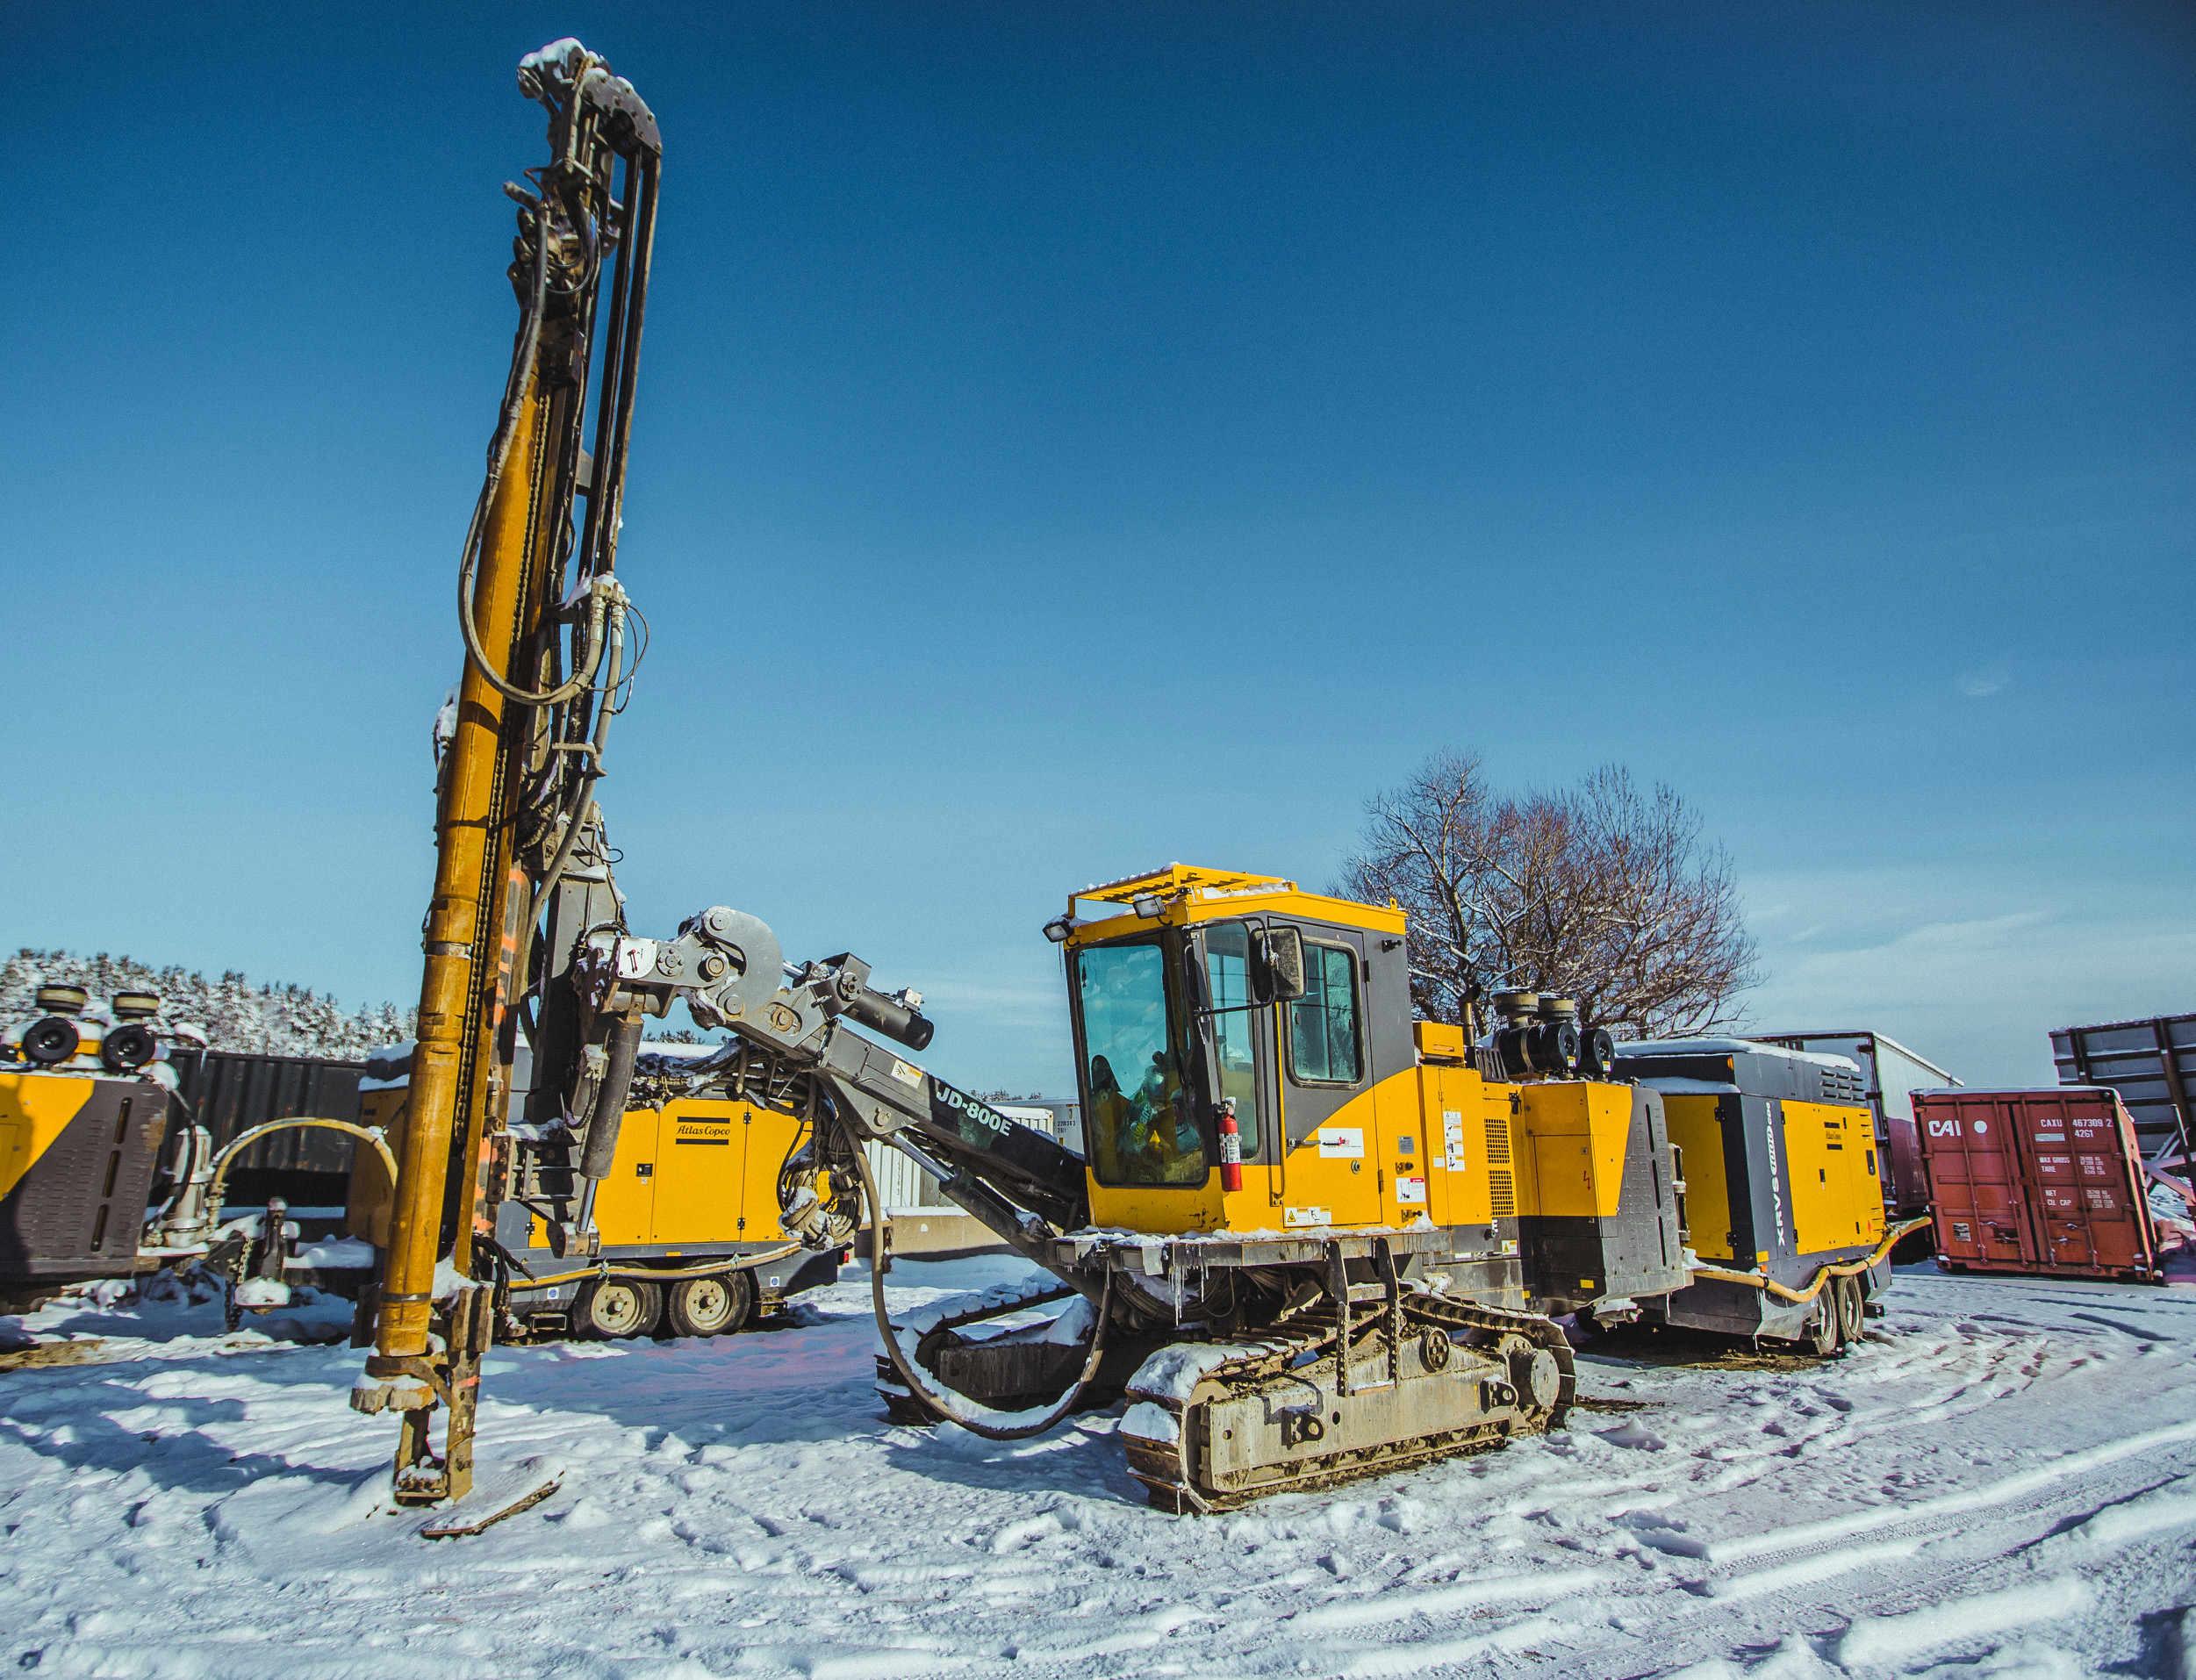 Excavator Drill Attachments - BreakersDrills North America